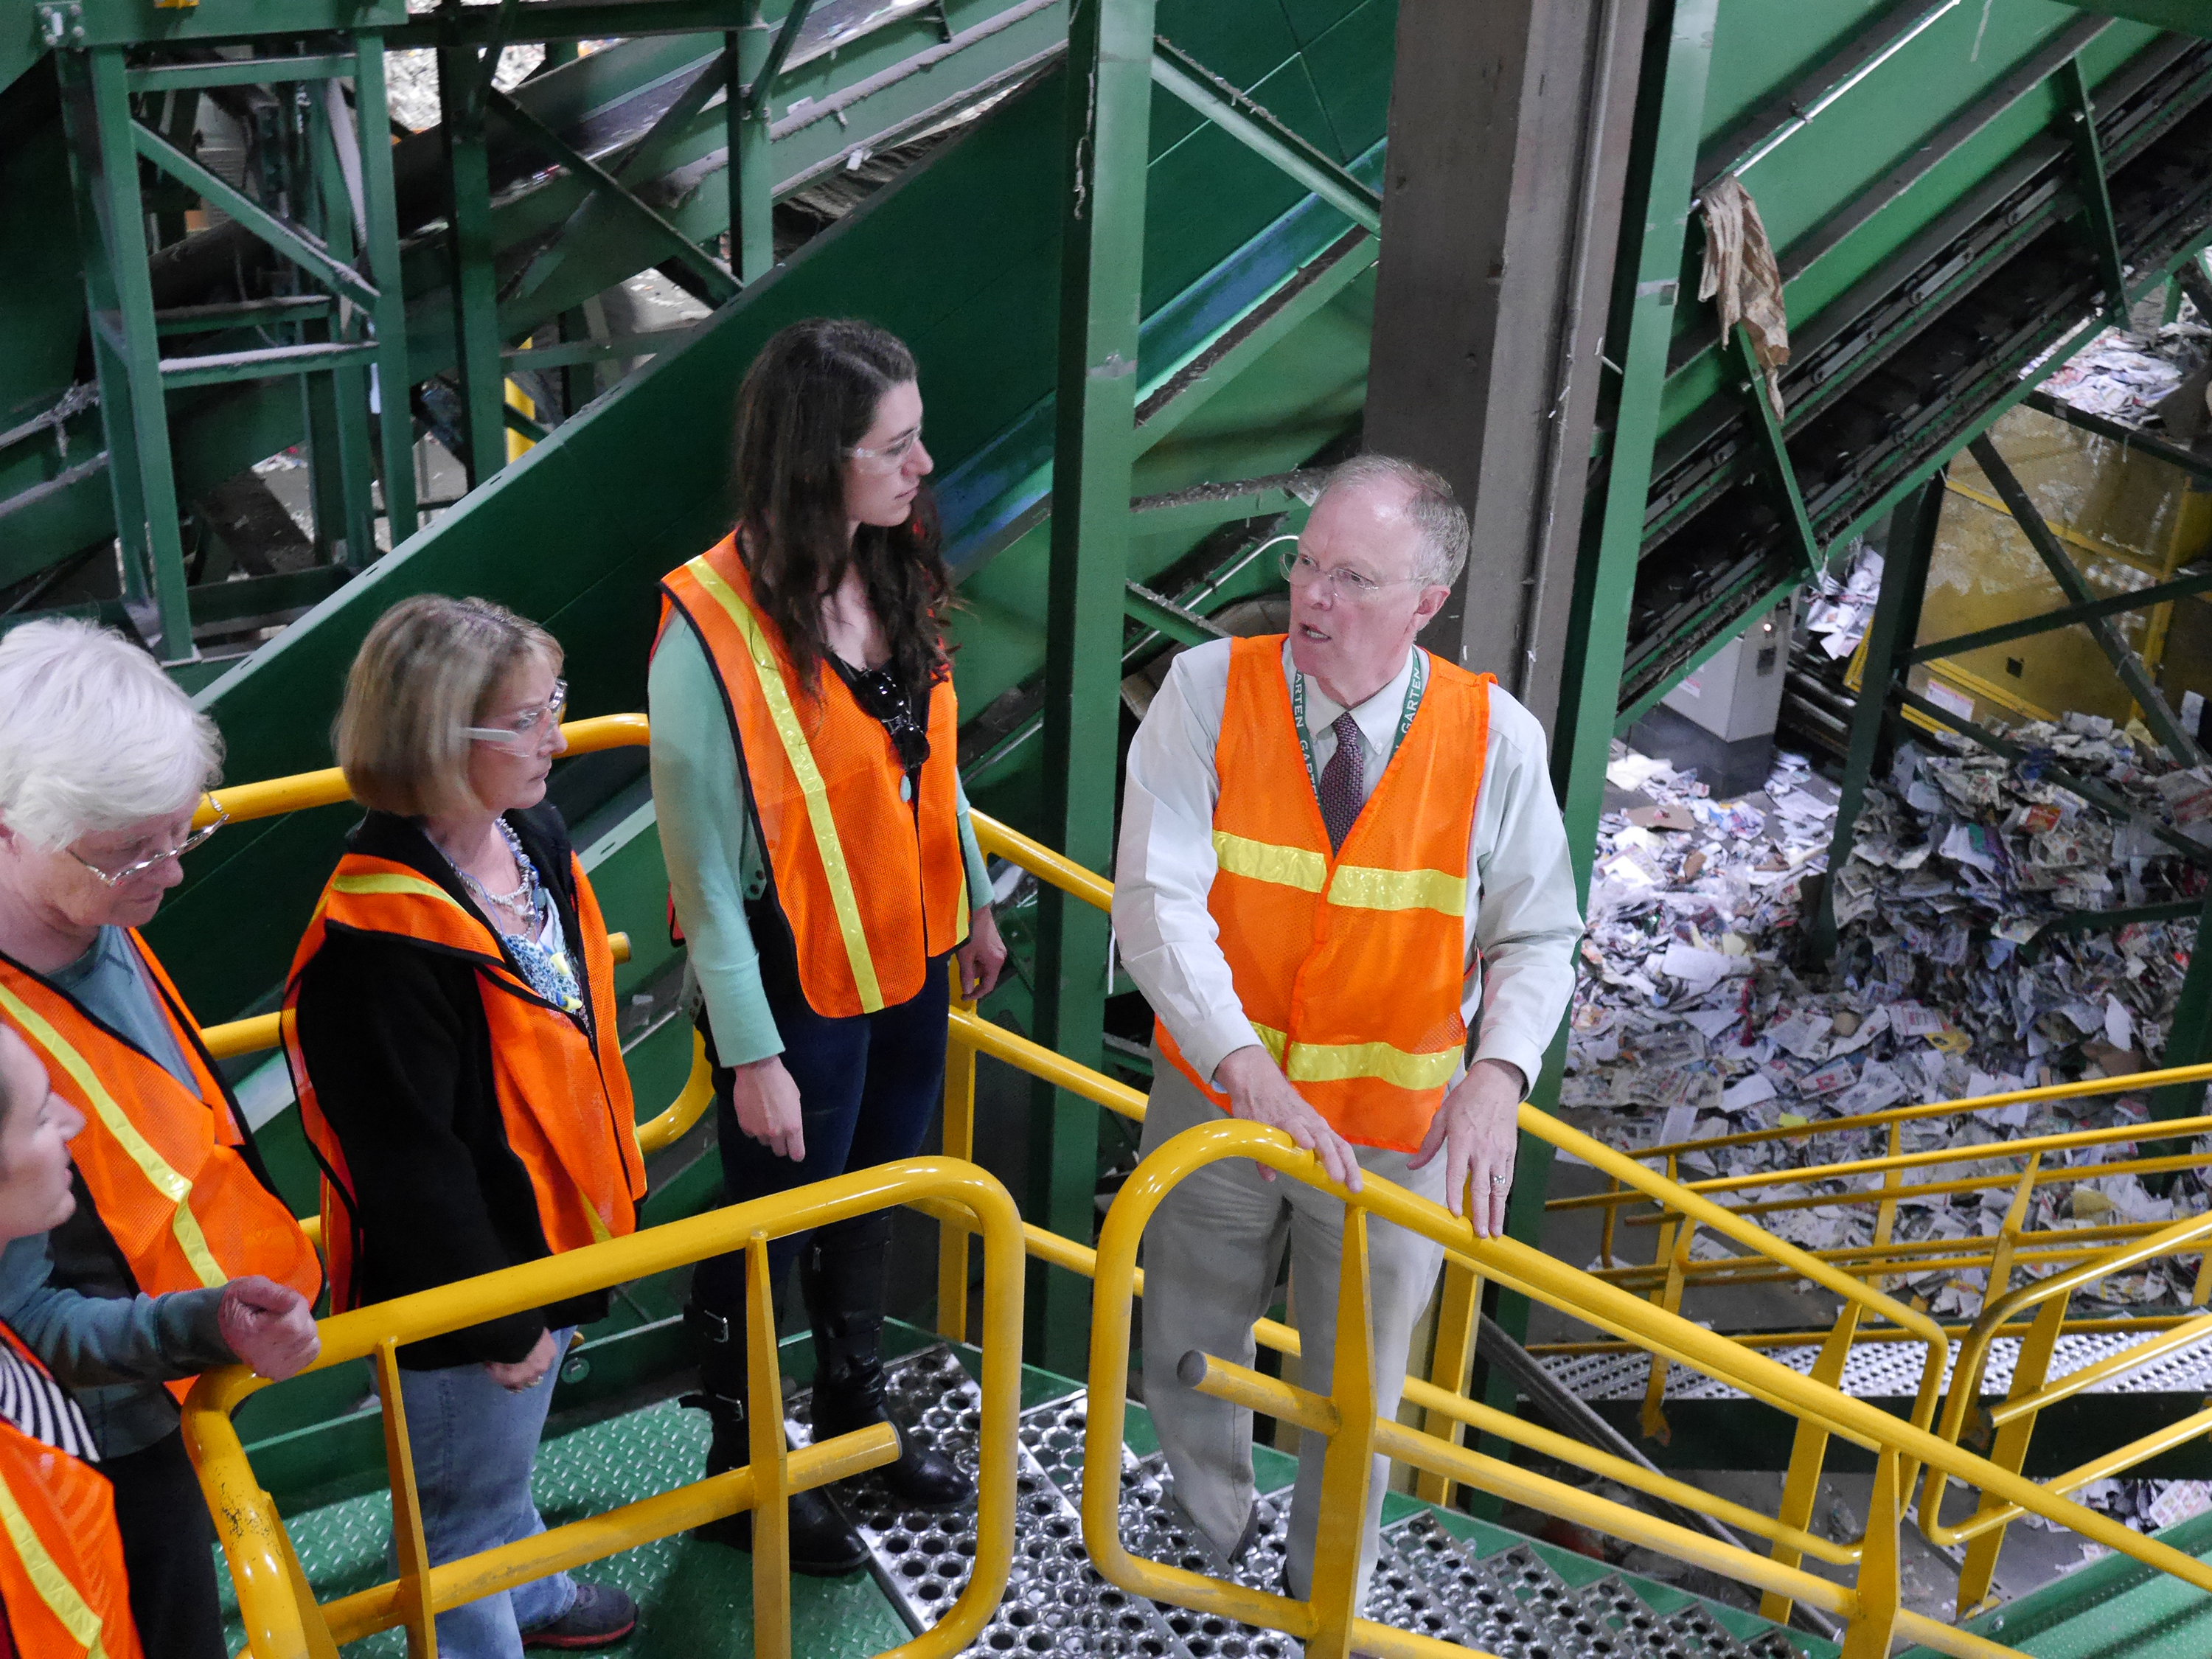 Master Recyclers in Materials Recovery Facility